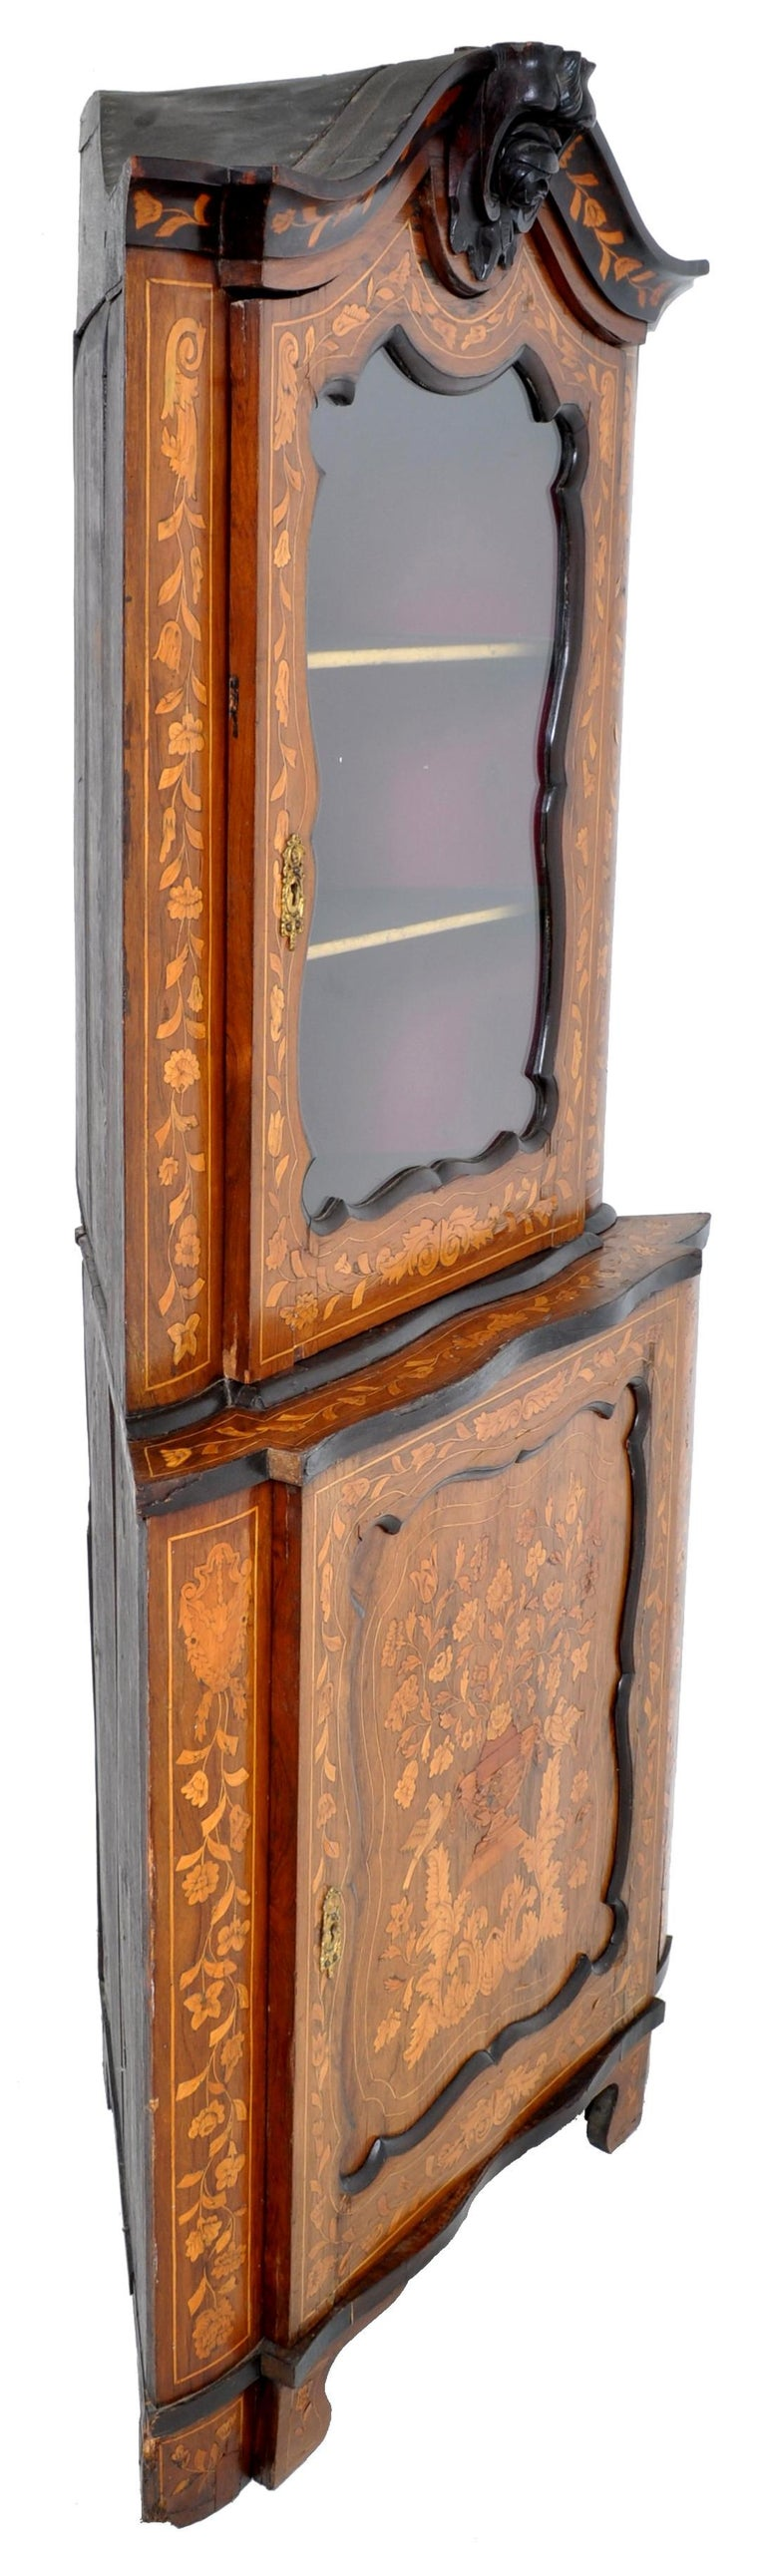 Antique Inlaid Marquetry Dutch Two-Piece Corner Cabinet, circa 1830 For Sale 6